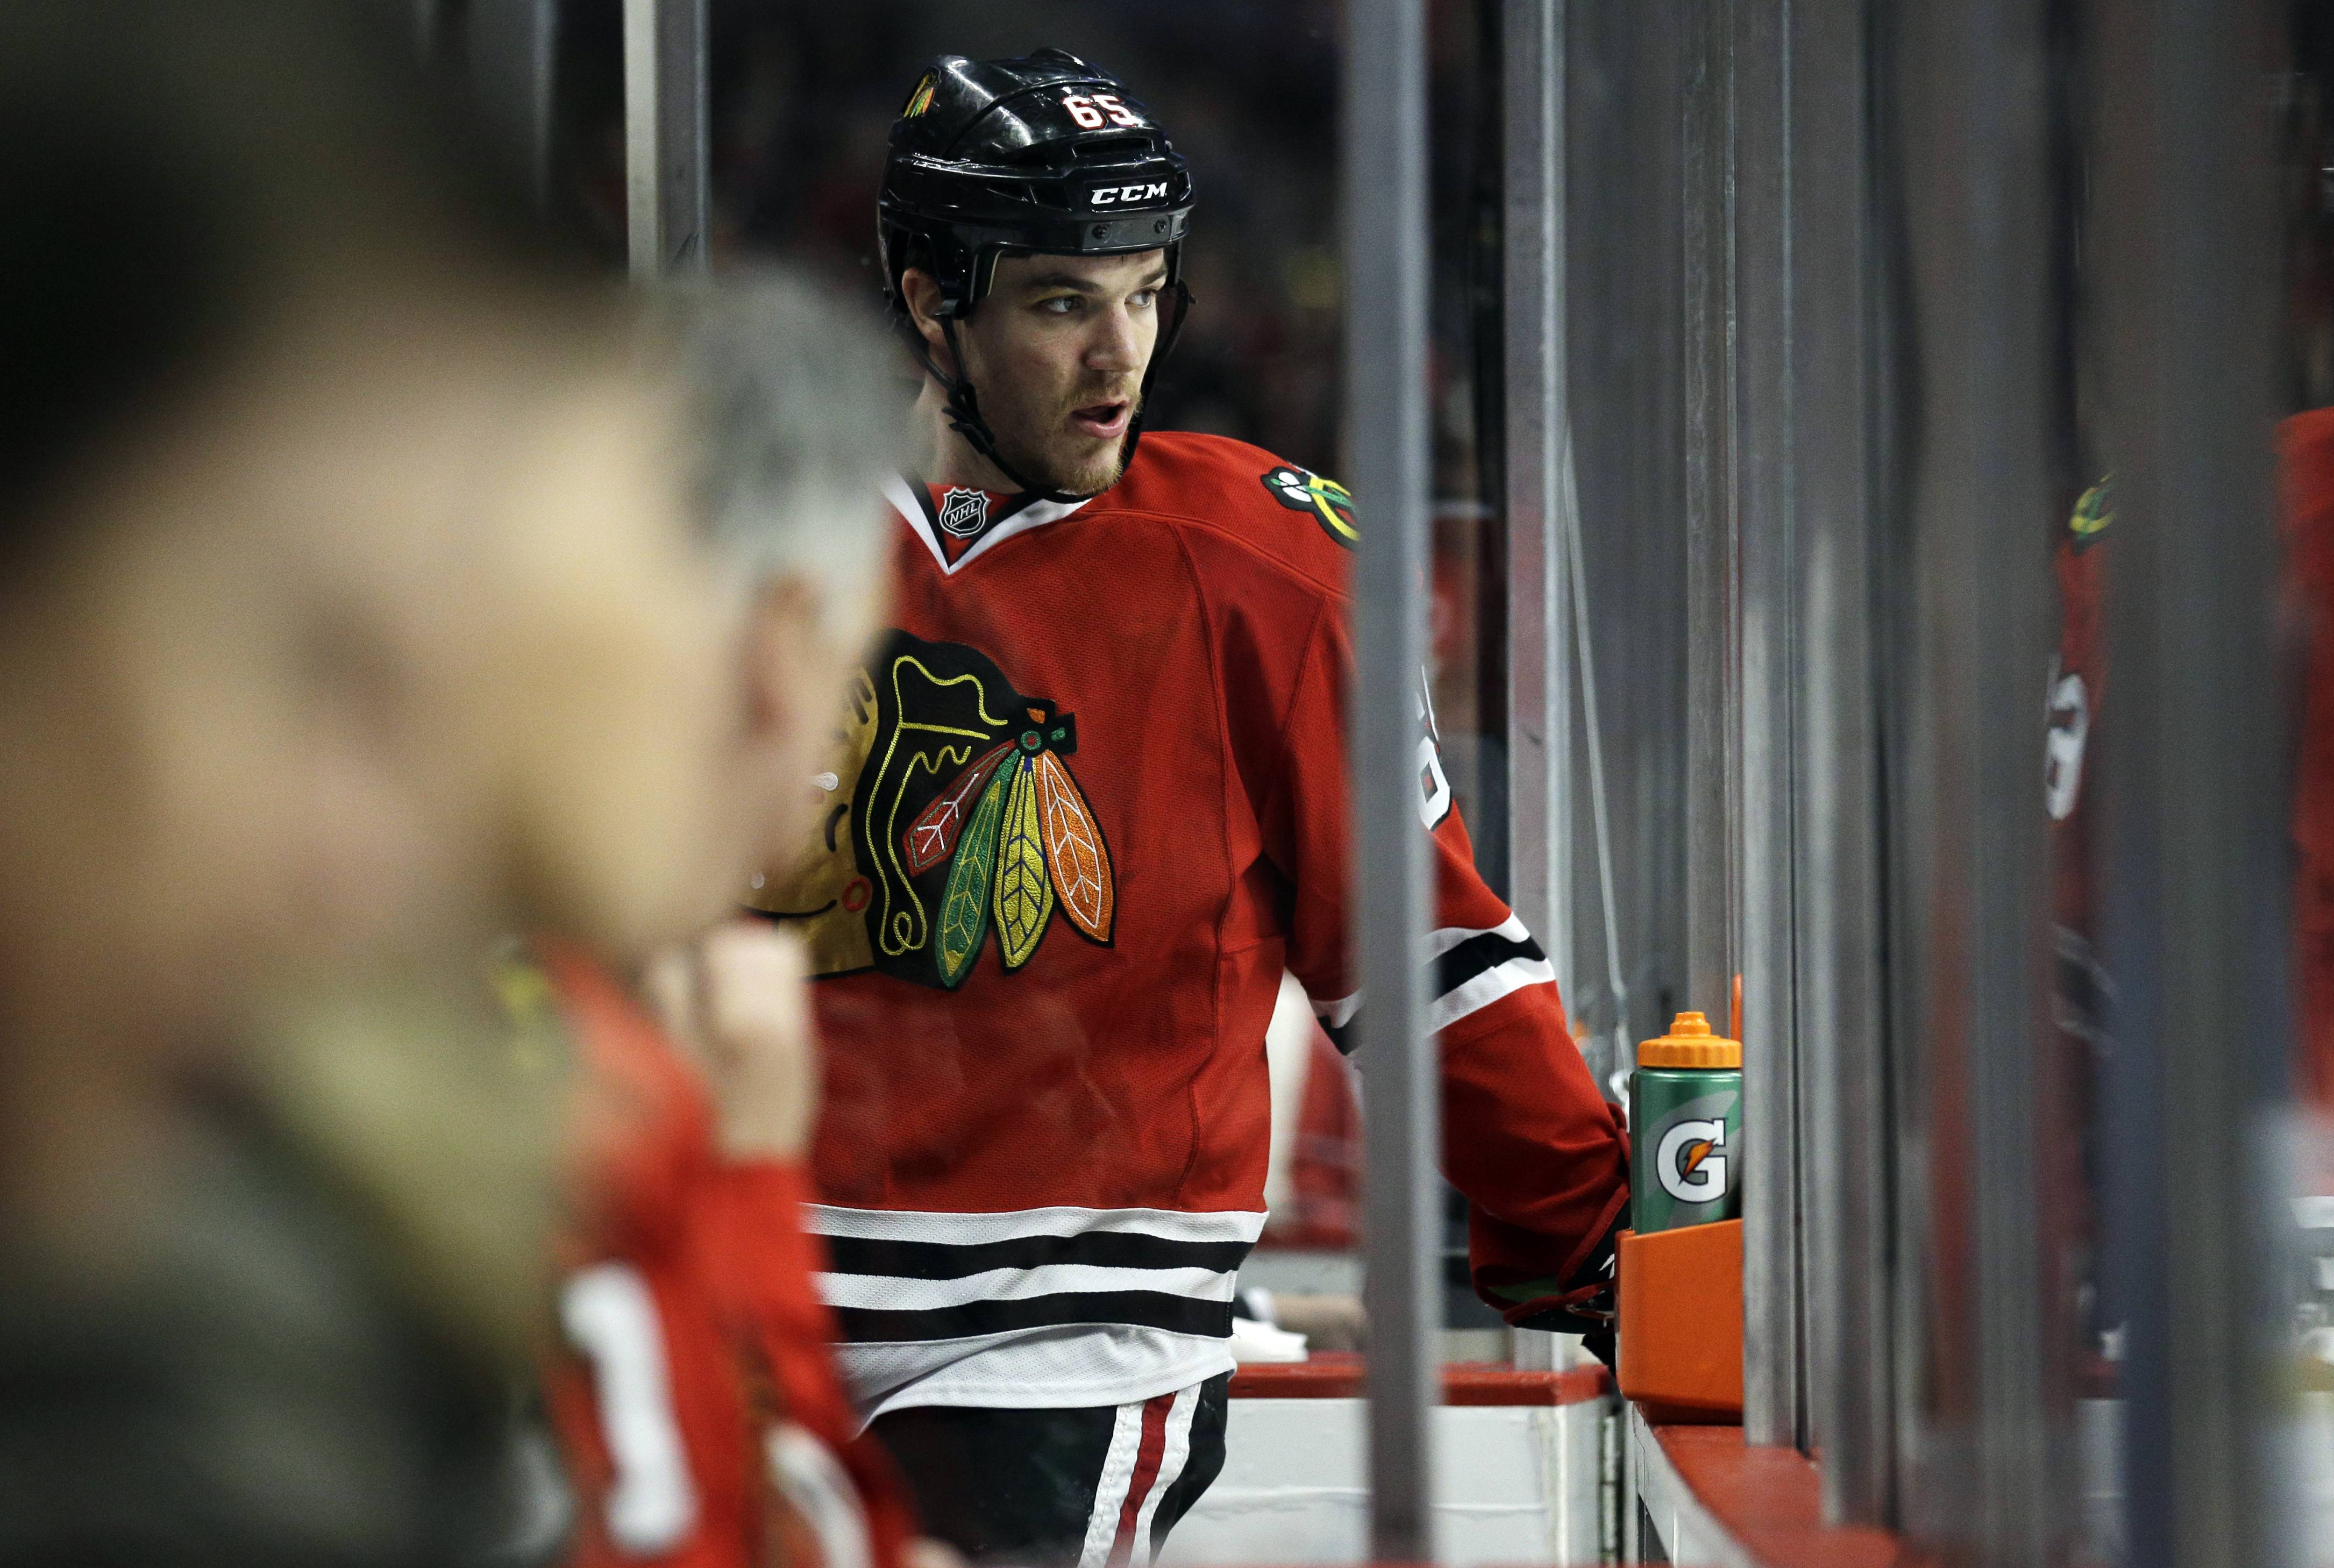 Chicago Blackhawks' Andrew Shaw (65) watches his teammates during the first period in Game 1 of an NHL hockey second-round playoff series against the Minnesota Wild in Chicago, Friday, May 2, 2014. (AP Photo/Nam Y. Huh)